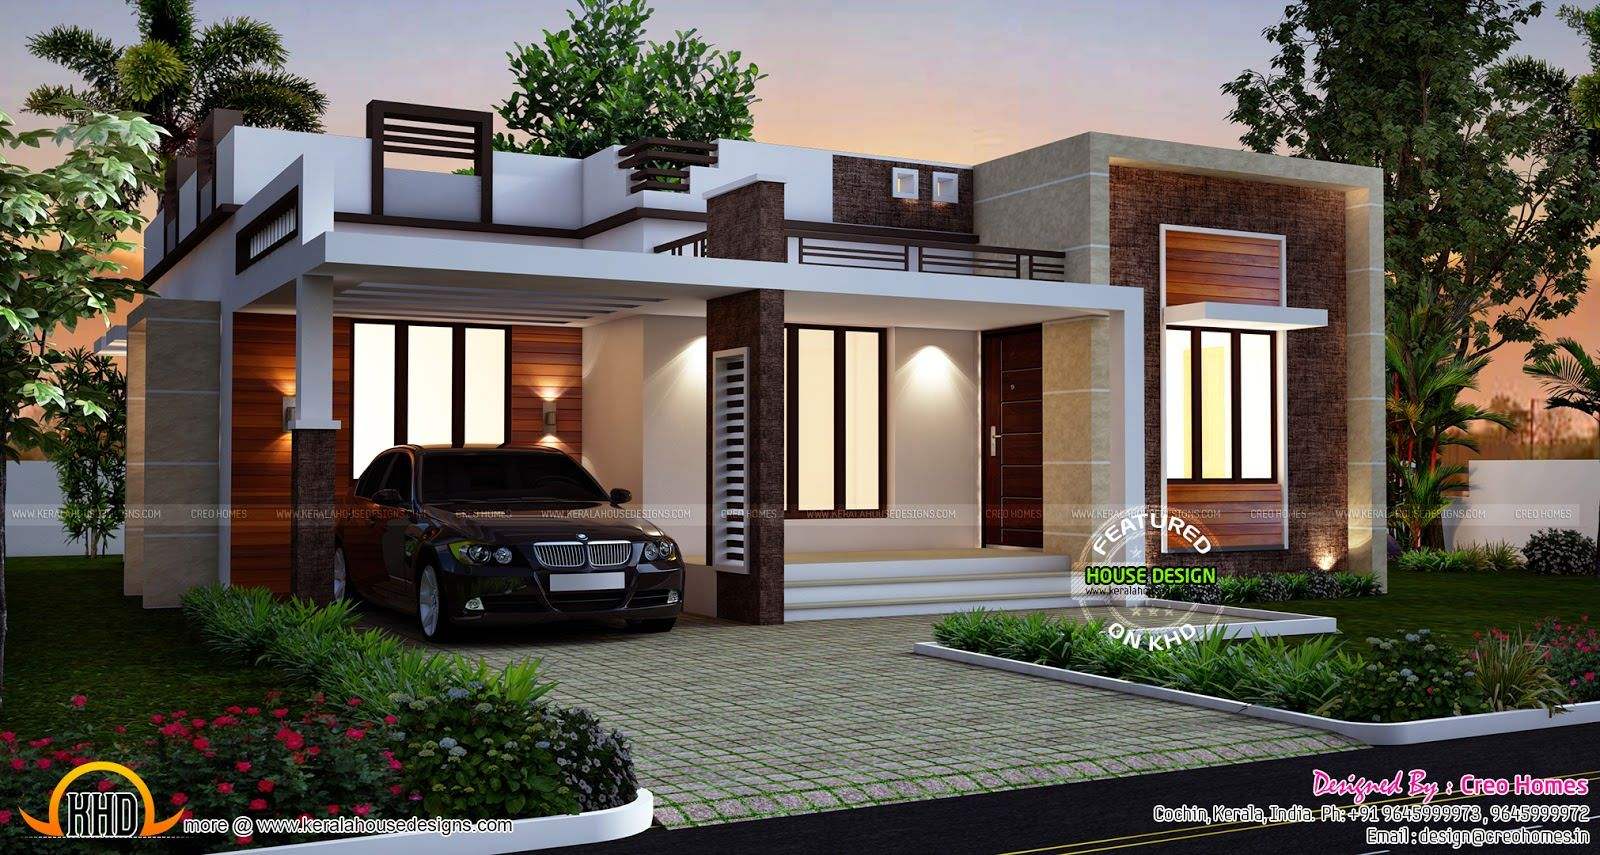 Designs Homes Design Single Story Flat Roof House Plans Inspiration Pinte